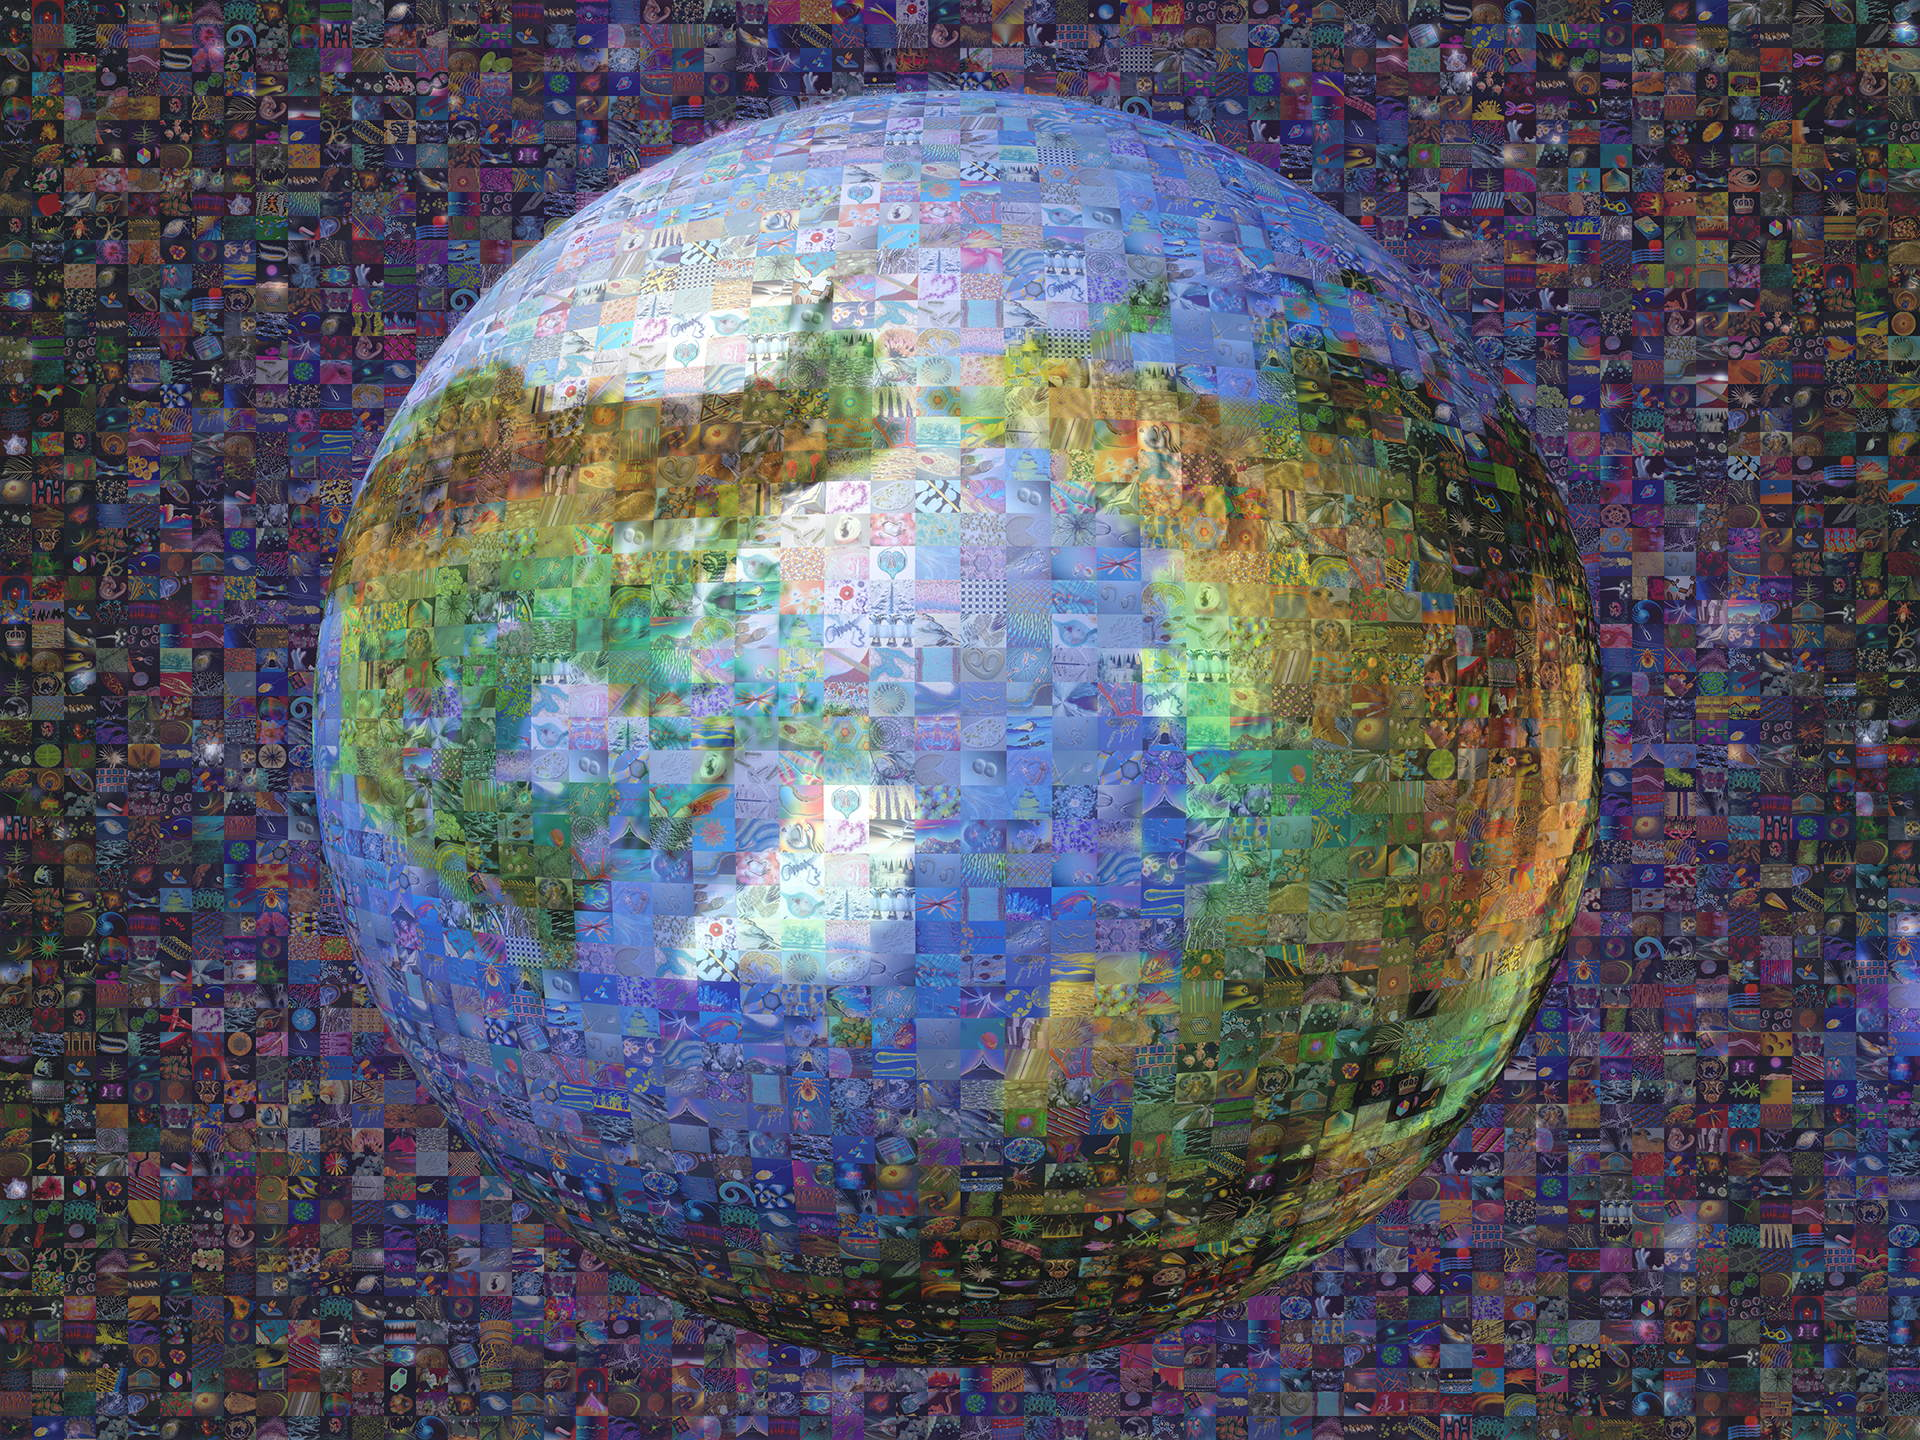 photo mosaic 3D Earth mosaic (looking down at the top of the Earth) created using 583 photos of microorganisms